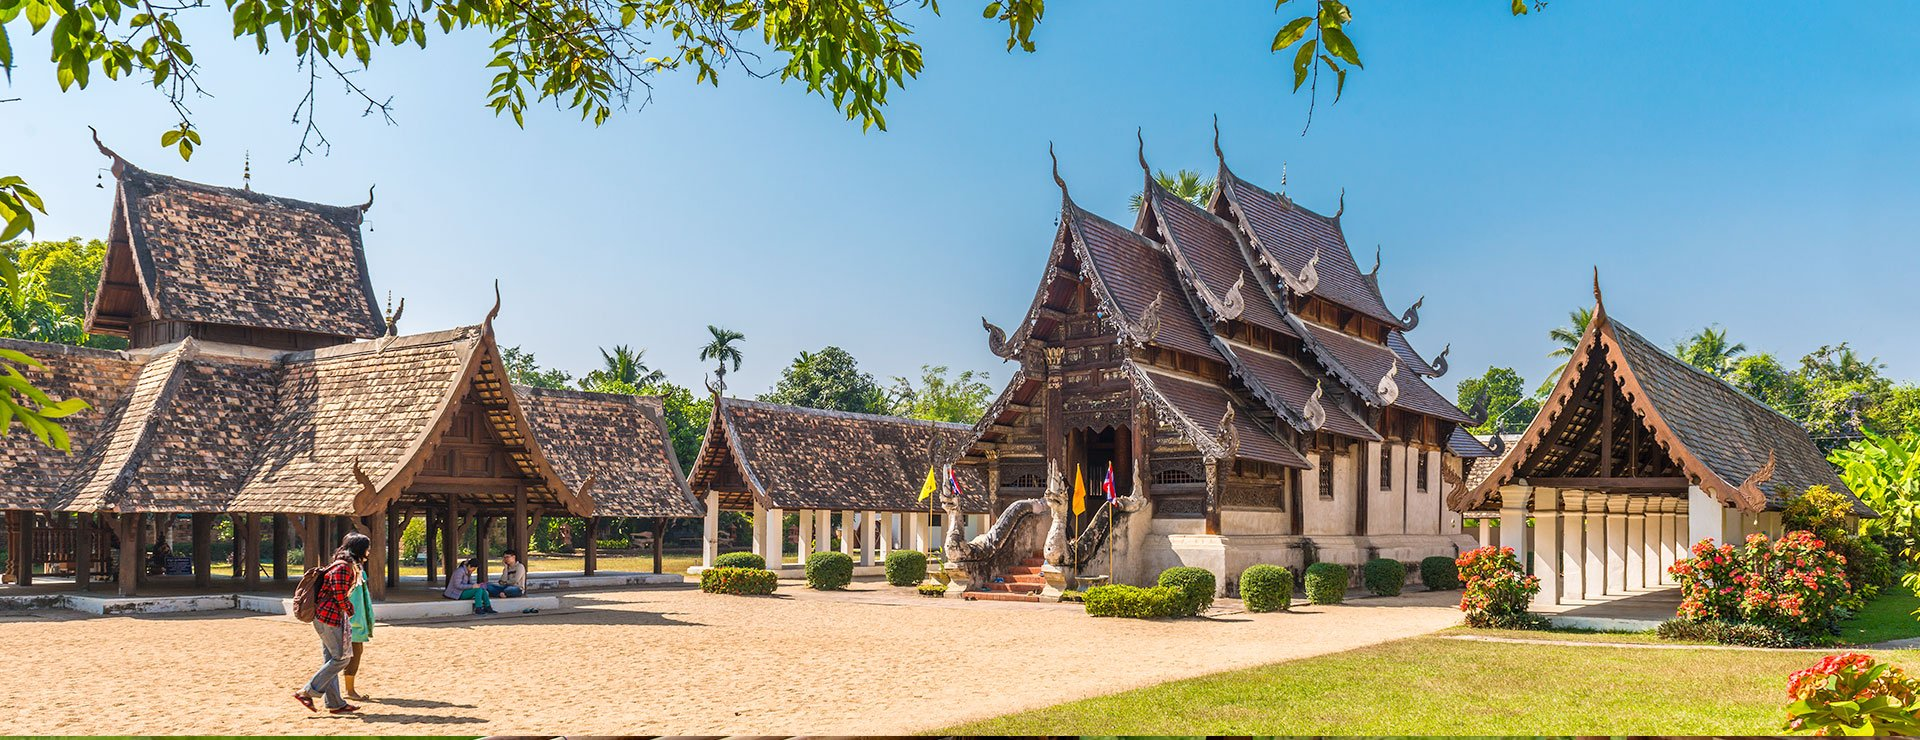 Top Destinations For Family Trips To Thailand